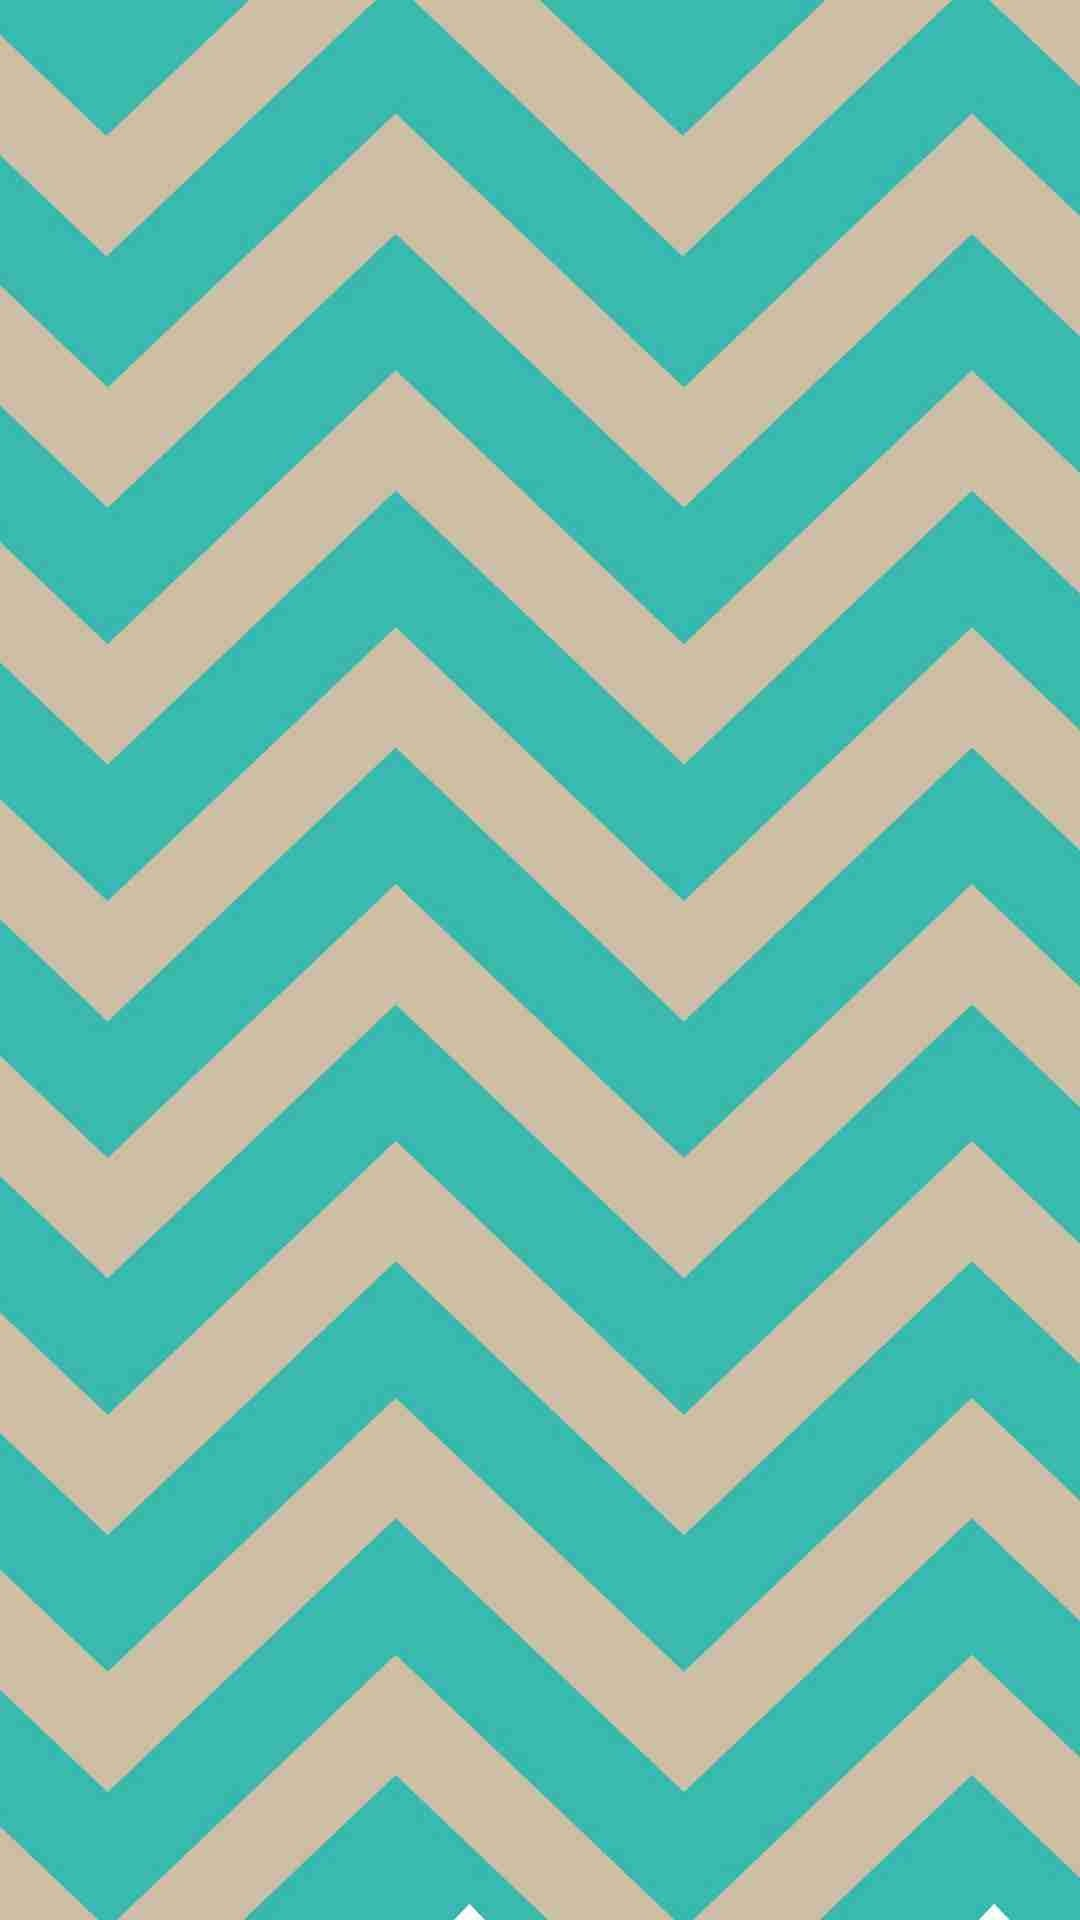 Amazing Tiffany Blue Chevron Wallpaper With The Letter S Excellent Home  Design Cool And Tiffany Blue